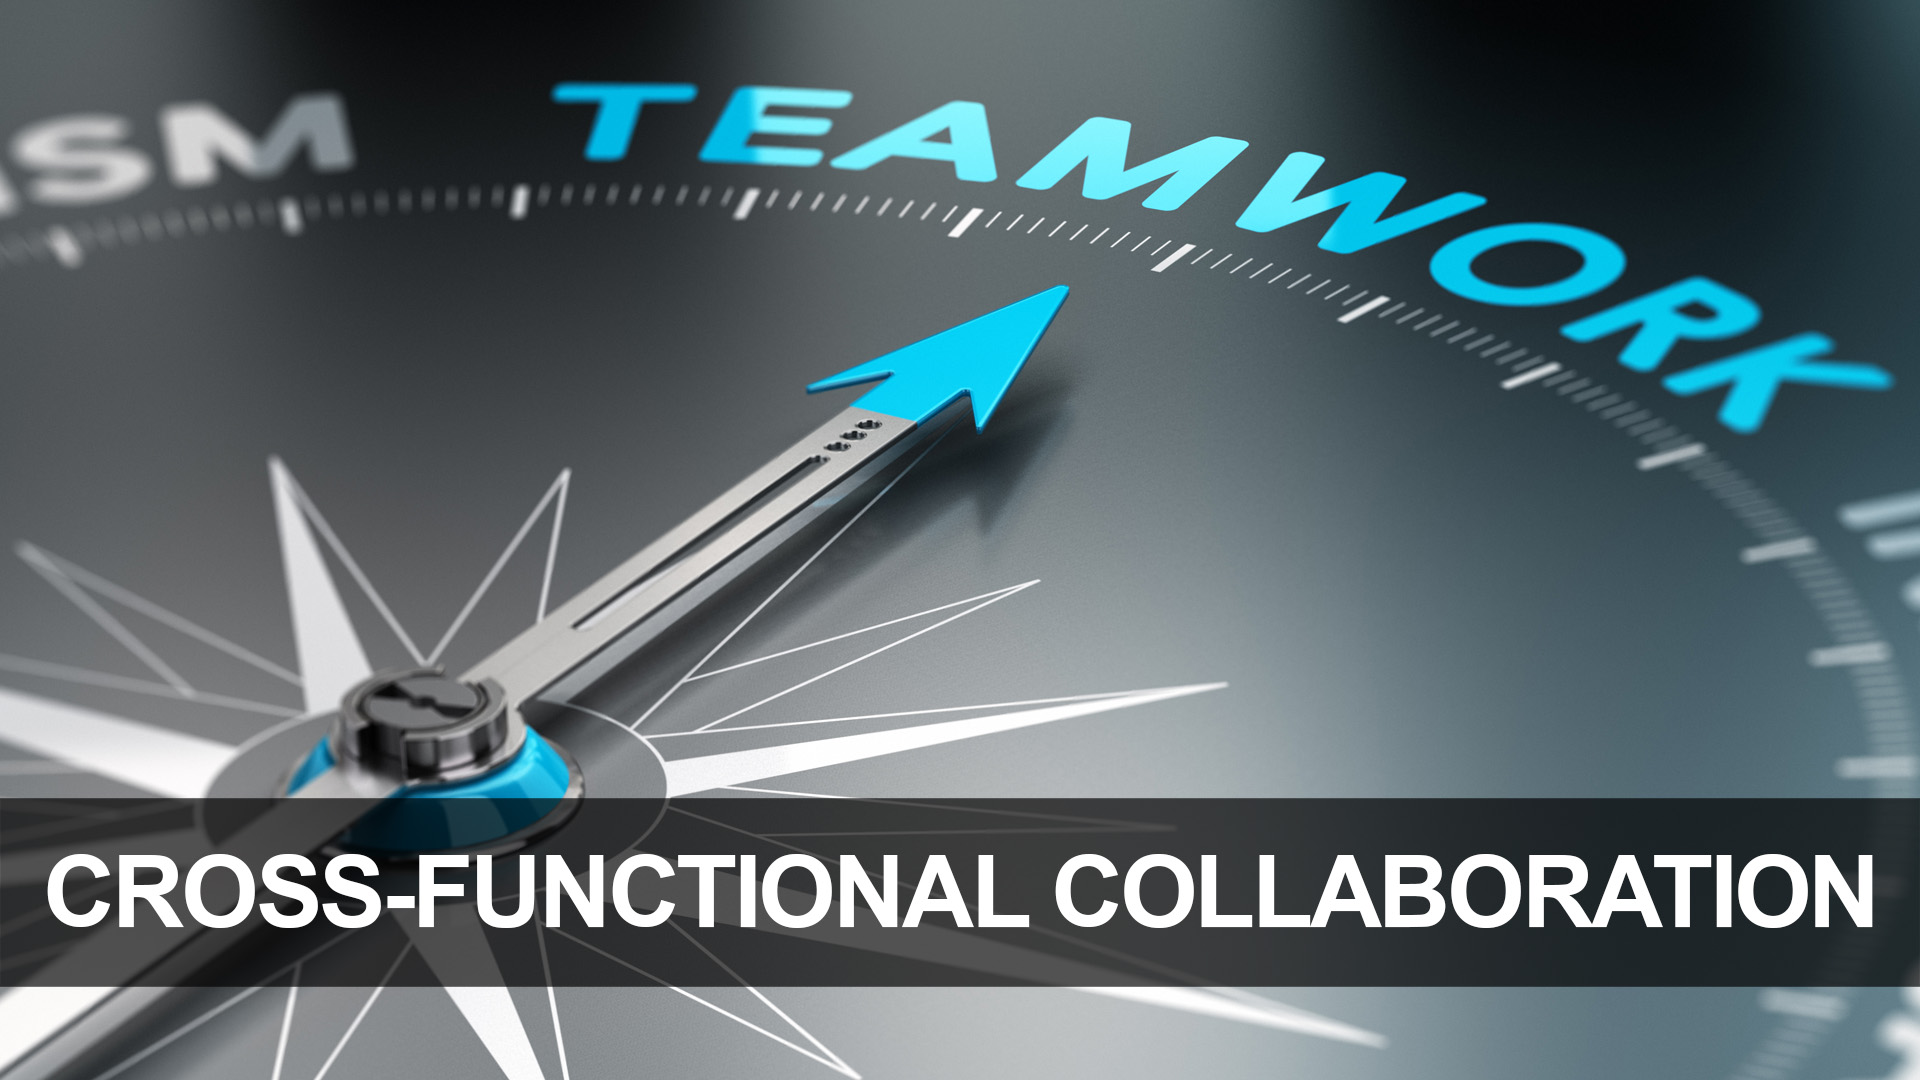 Cross-Functional Collaboration Icon 2.jpg